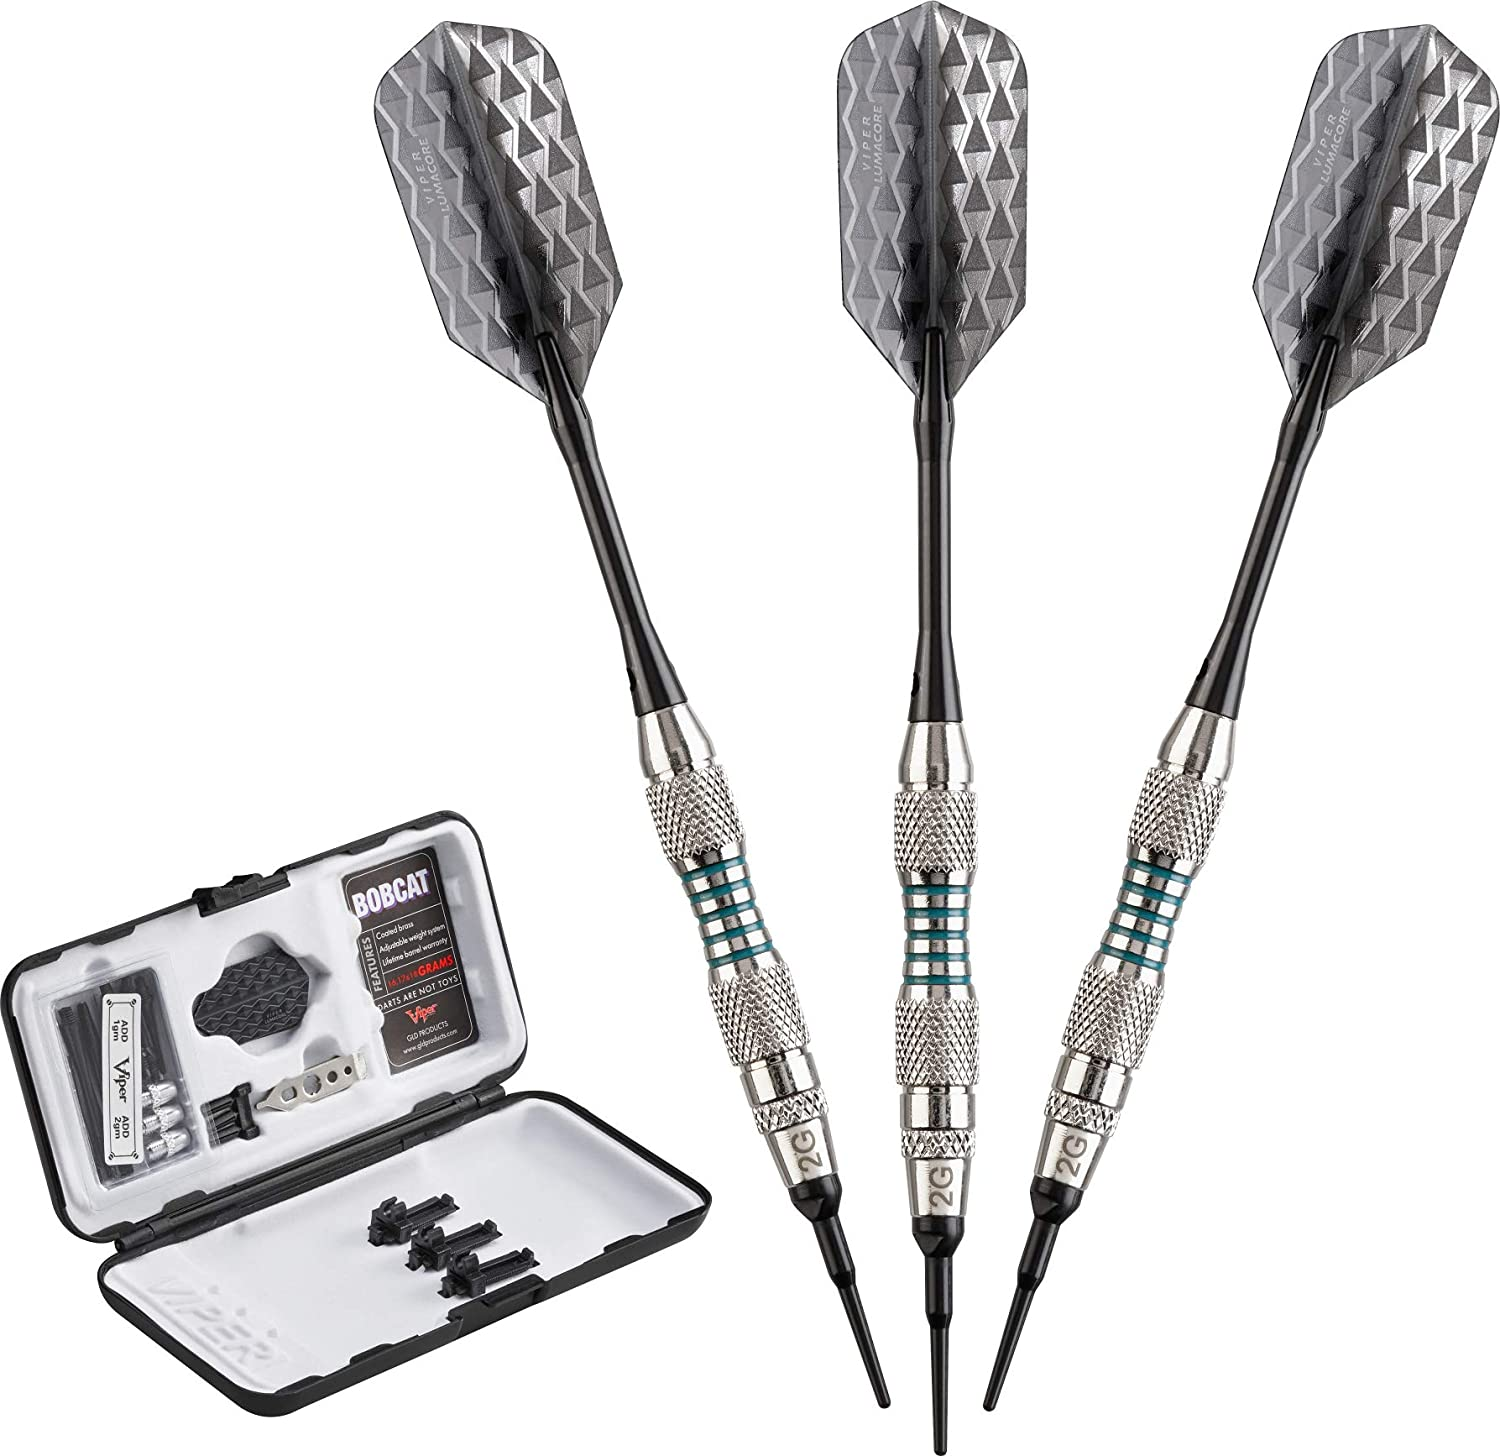 Viper Bobcat Adjustable Weight Soft Tip Darts with Storage/Travel Case Viper by GLD Products PR - 20-0912-16-P